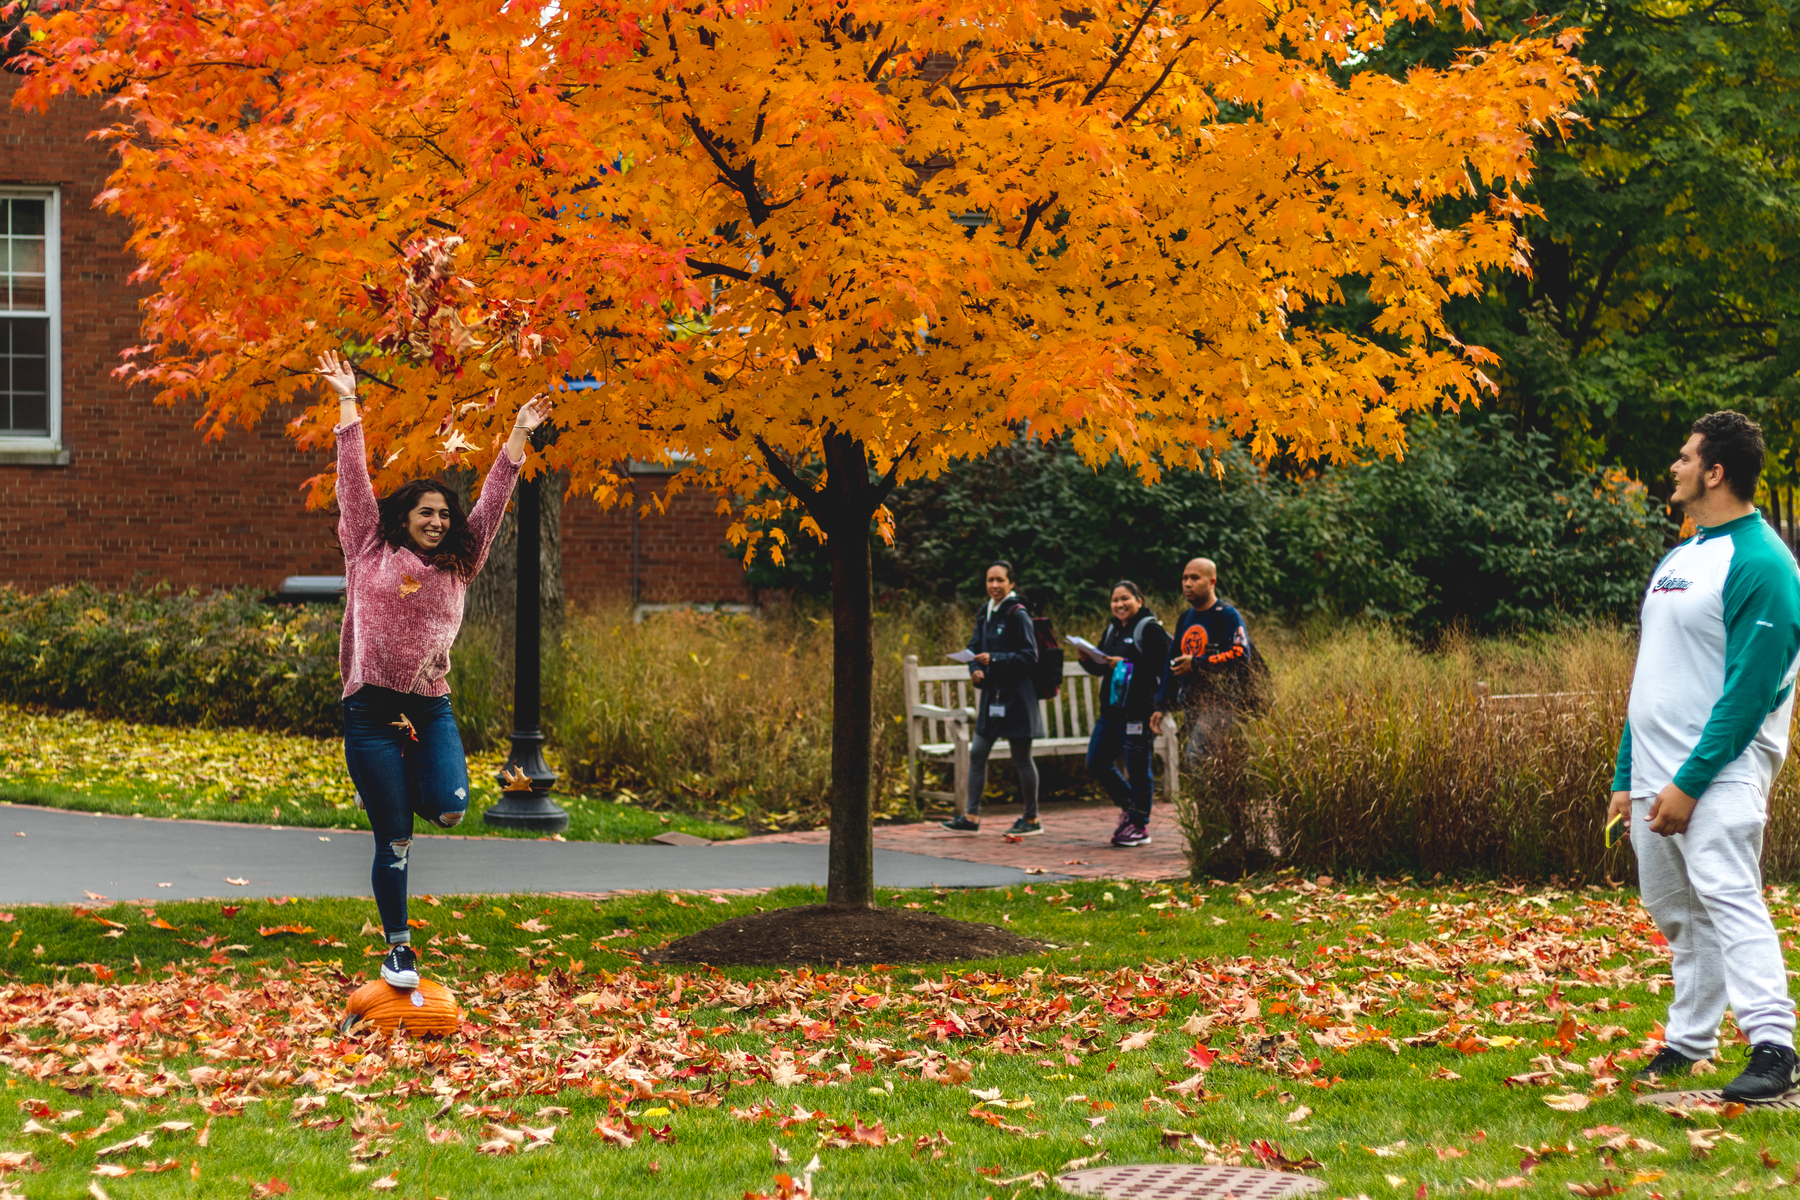 Female student balances on a pumpkin under tree with bright orange leaves. Other students stroll across the greenspace. Campus reopens for the fall 2020 semester, following closure due to COVID-19 concerns.